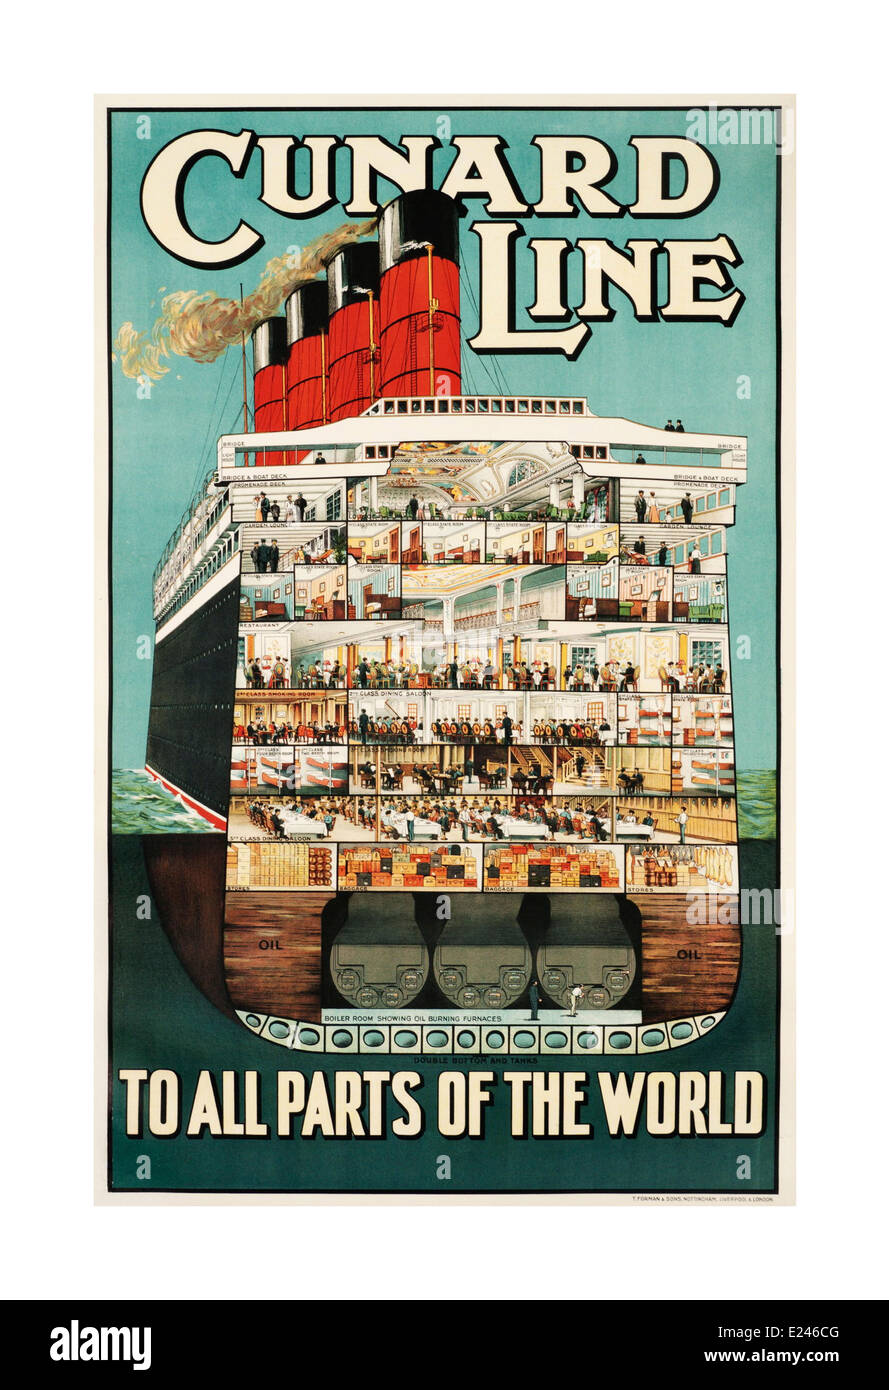 1930's vintage cruise ship poster for Cunard Line showing internal cross section of all levels of a luxury cruise - Stock Image